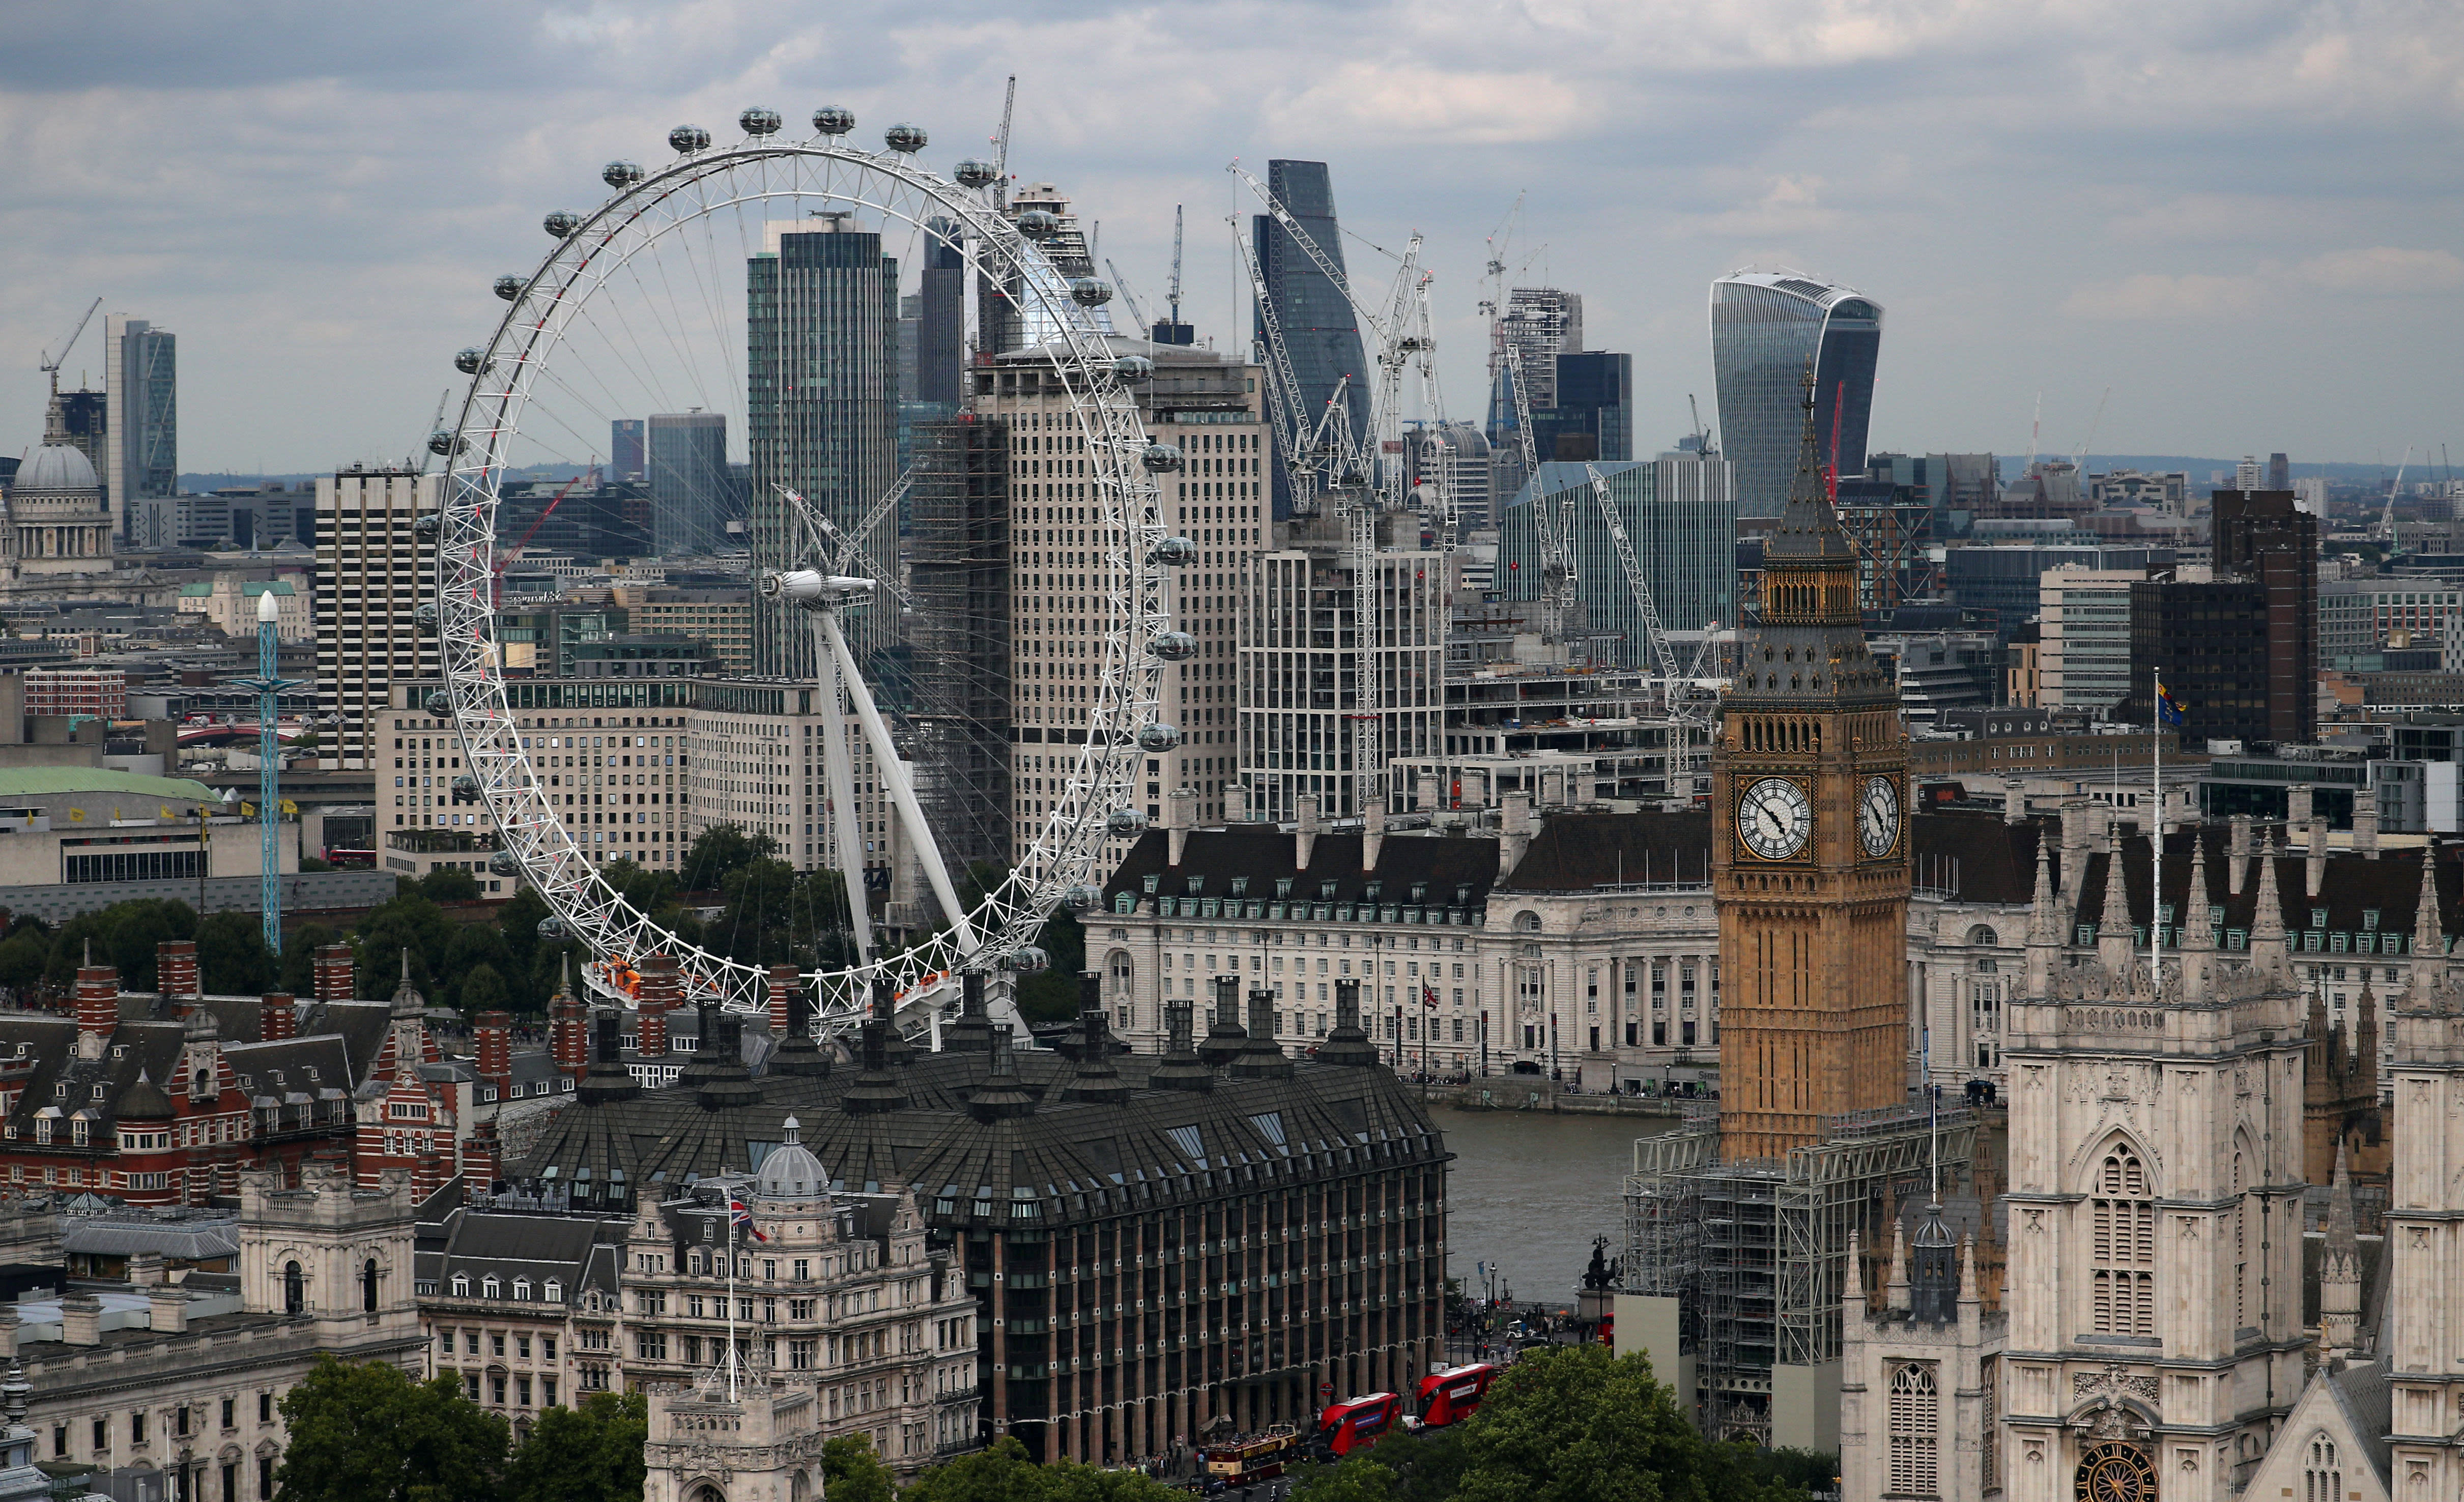 London just overtook New York for fintech investment, research shows